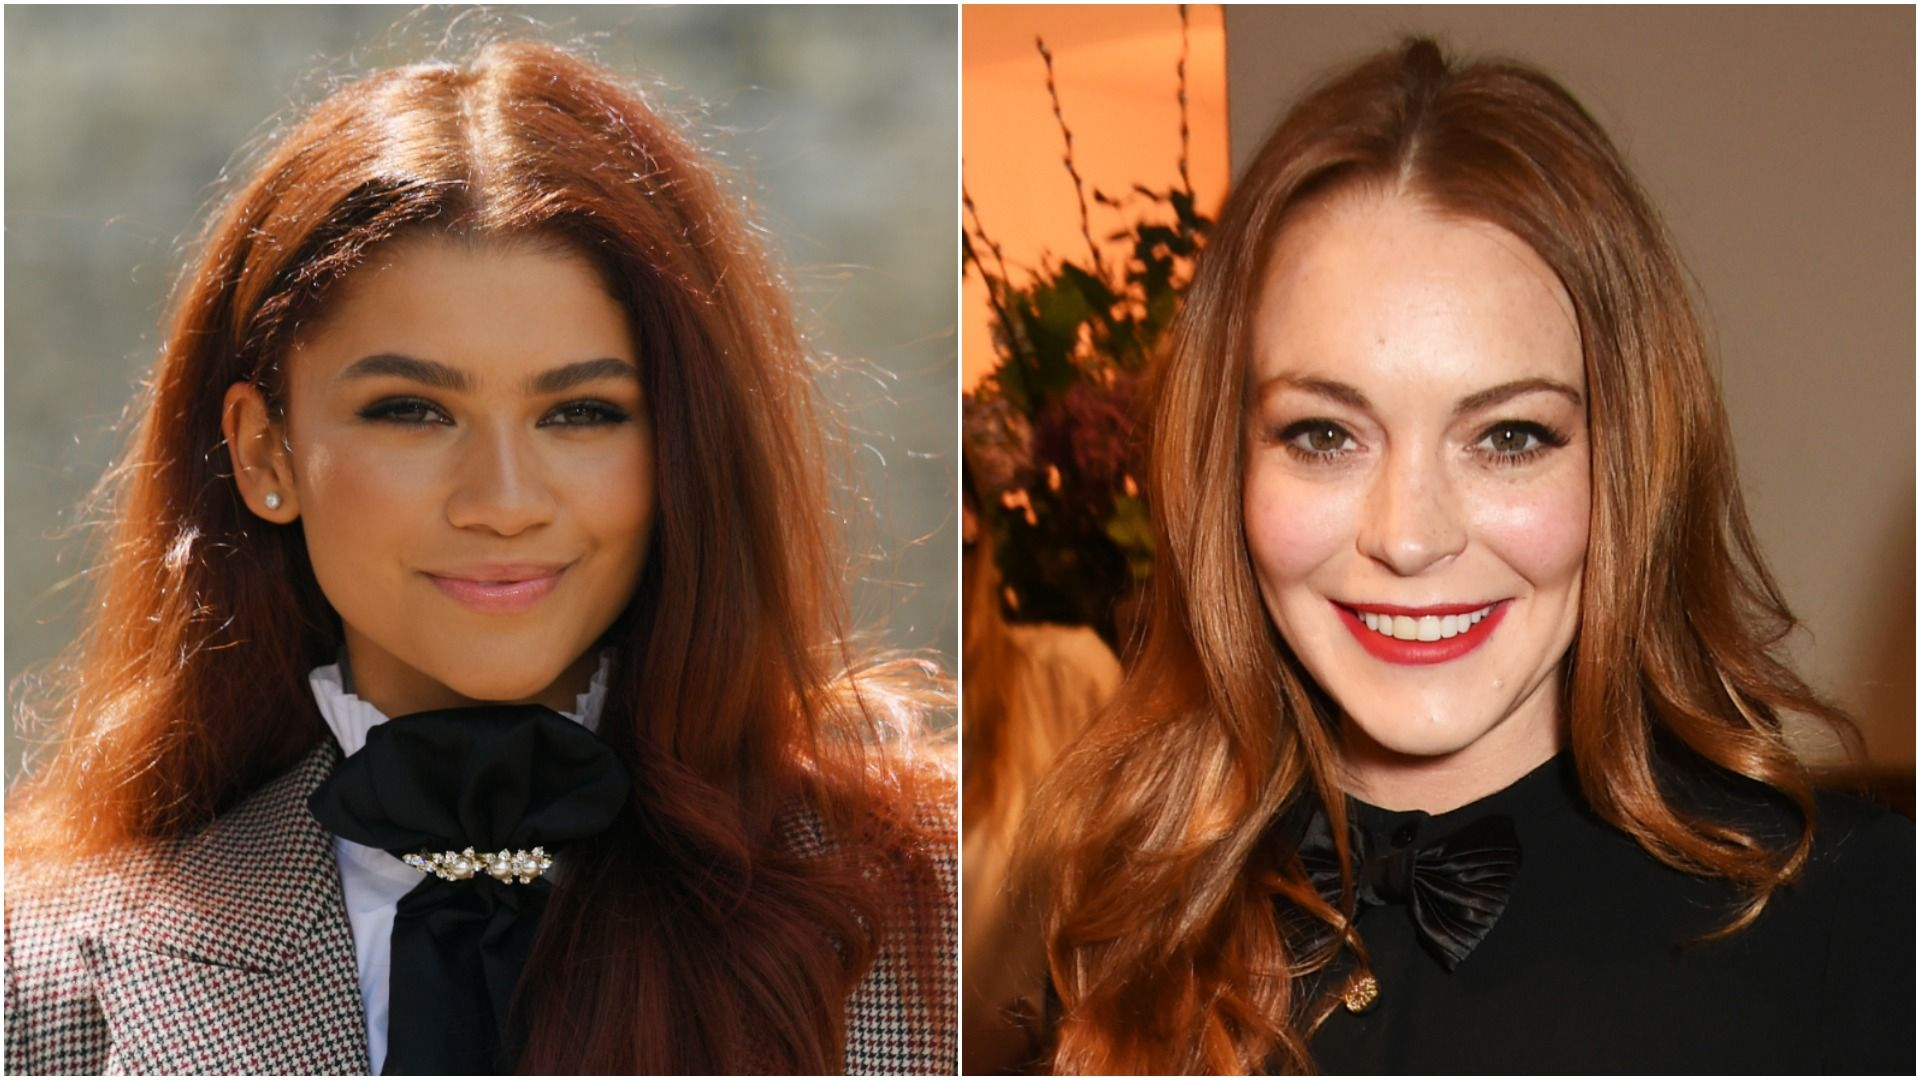 Zendaya just responded to Lindsay Lohan's savage comments about her Met Gala dress